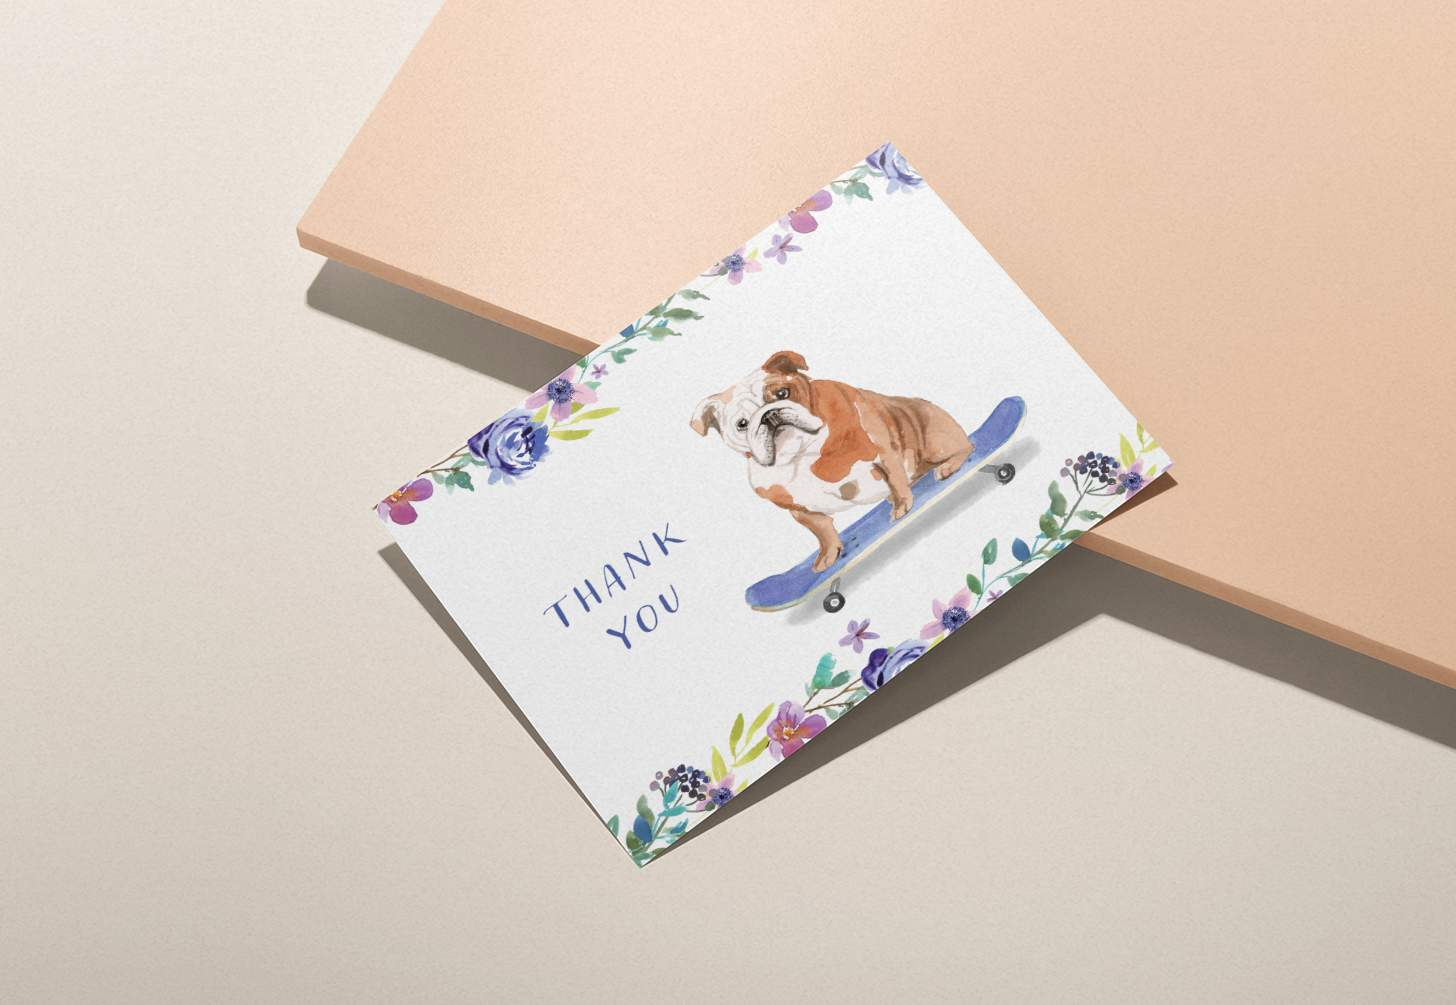 Brown and white dog riding skateboard design on pink background